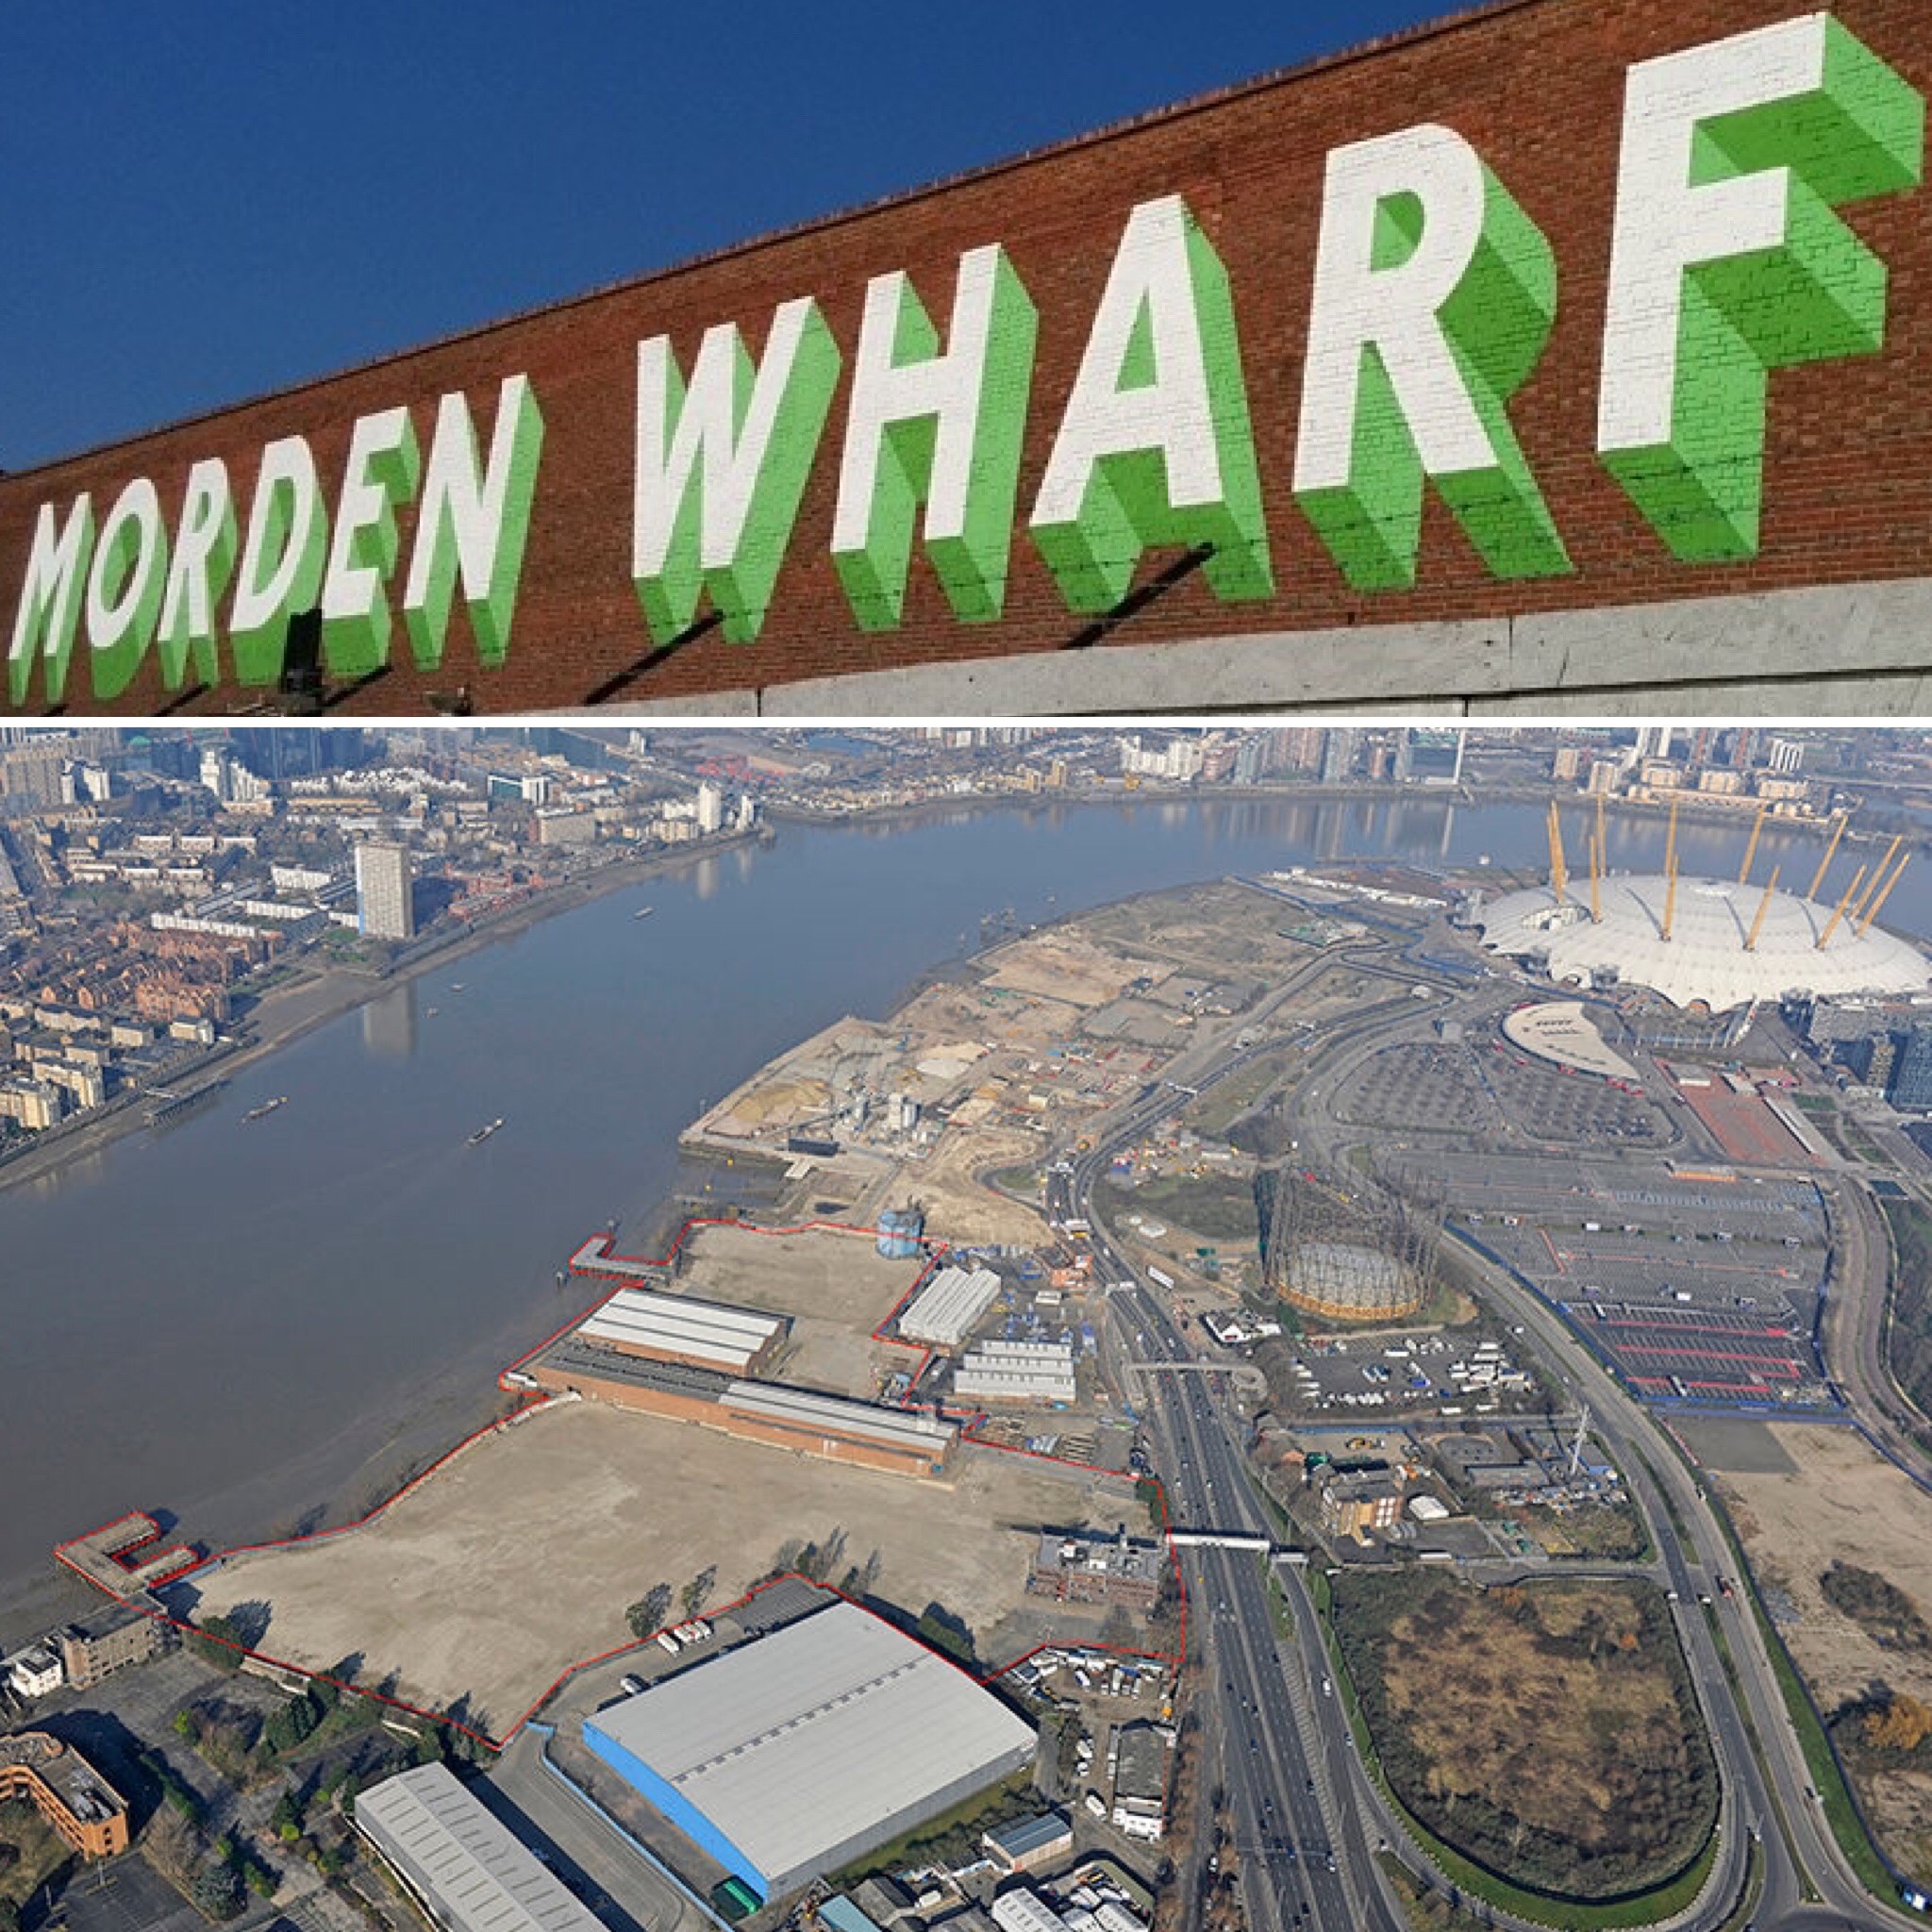 The undeveloped Morden Wharf site (outlined red above) was acquired by developer U+I, formerly Cathedral, in March 2012. Recently revealed that Koolhaas architects are working on a masterplan for the site [ U+I Group Plc ]